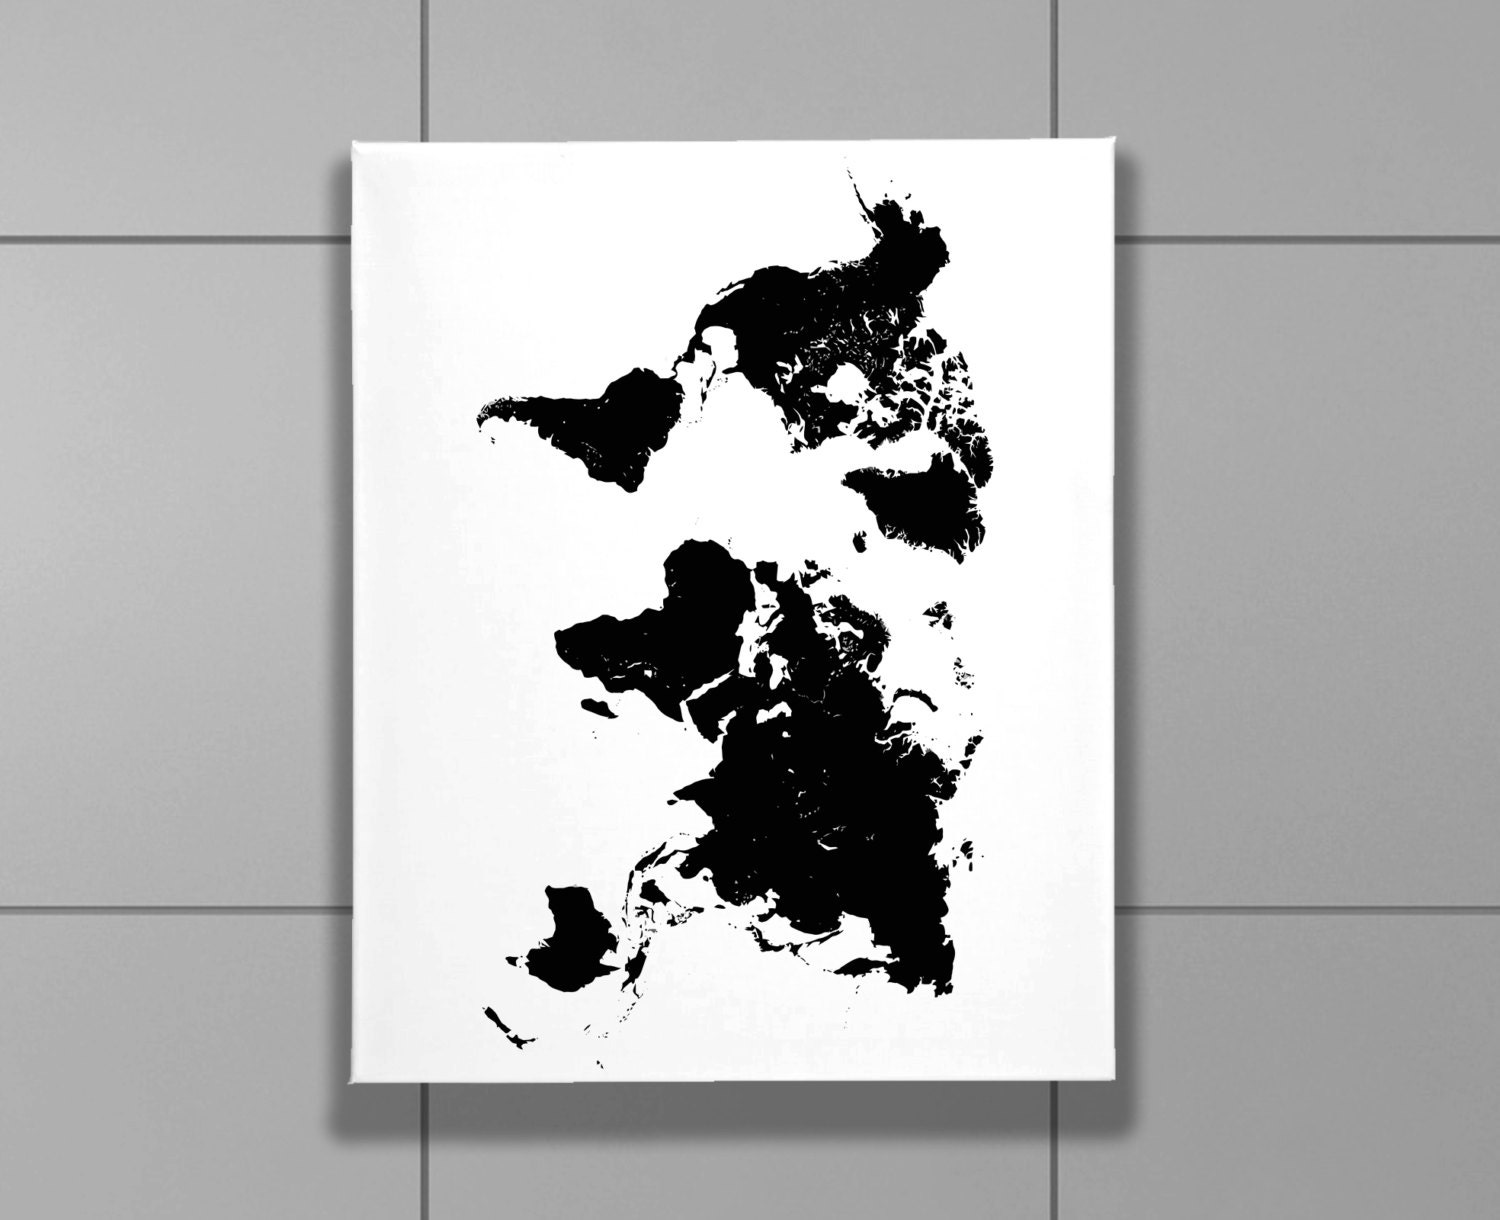 Wrap canvas print 8 x 10 black and white printed world map travel wrap canvas print 8 x 10 black and white printed world map travel bedroom publicscrutiny Gallery